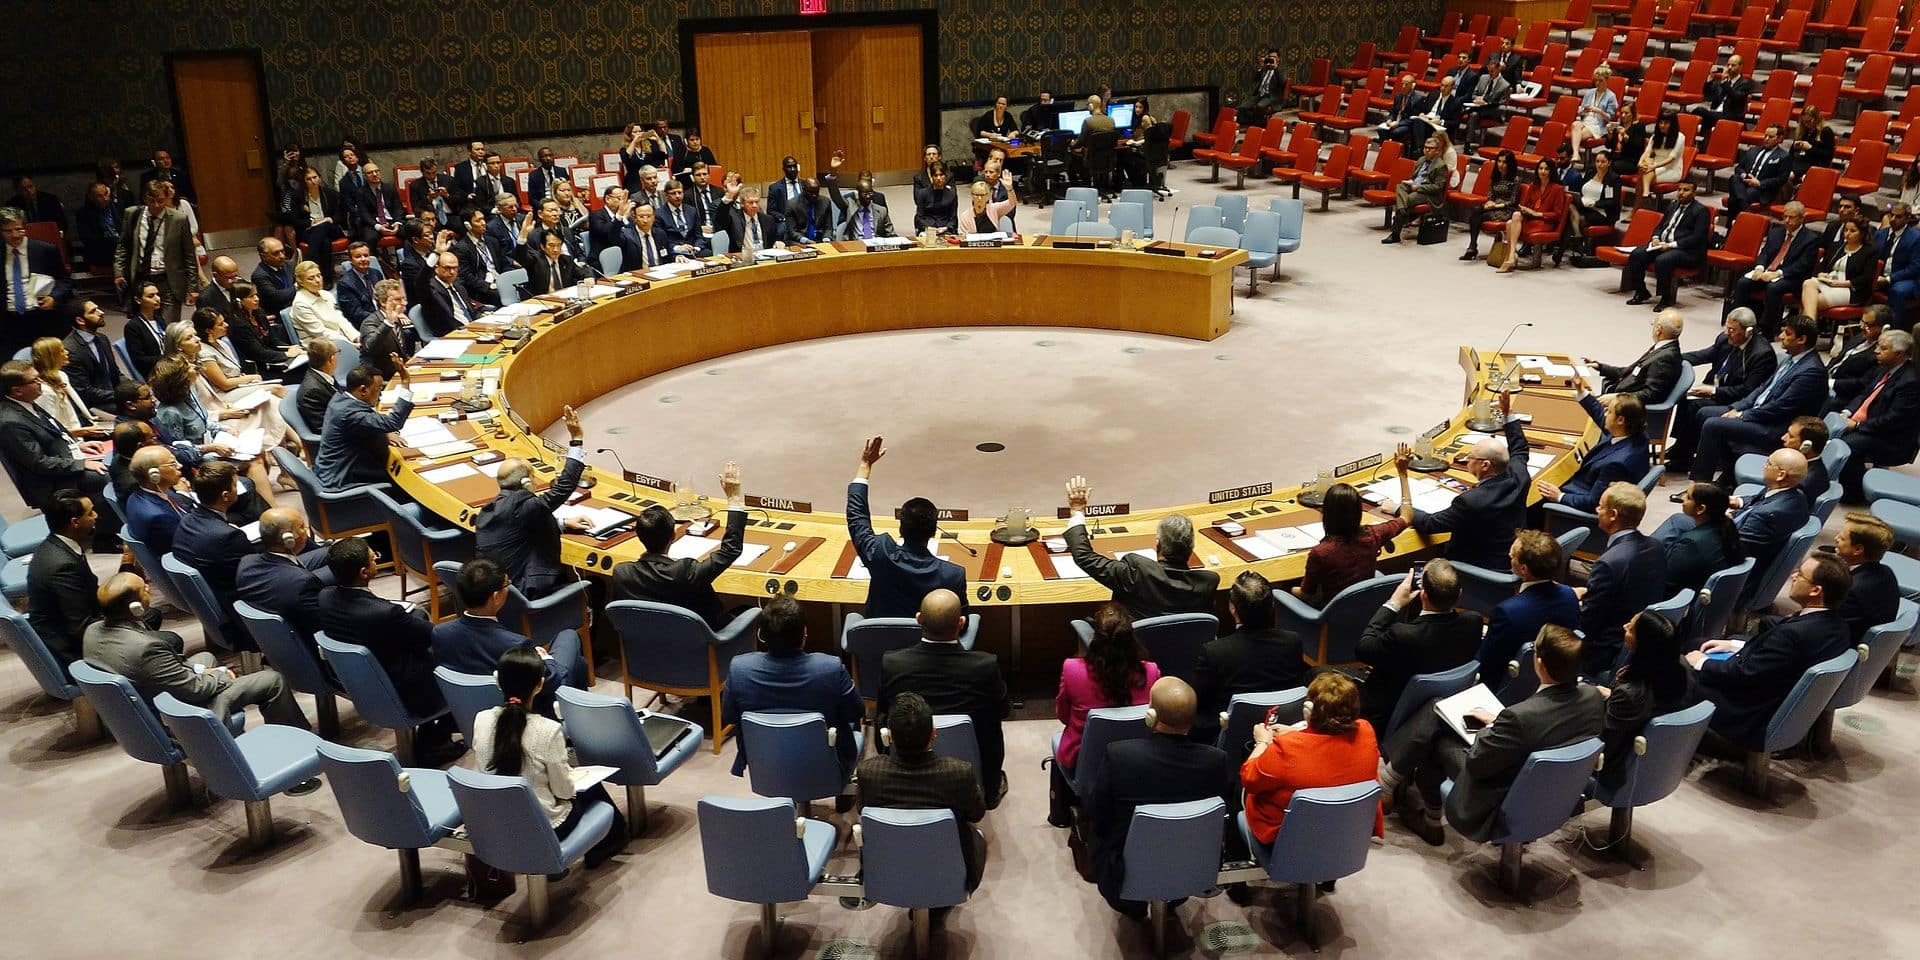 The United Nations Security Council votes at a meeting on threats to international peace and security September 21, 2017 at the United States Mission in New York. / AFP PHOTO / DON EMMERT